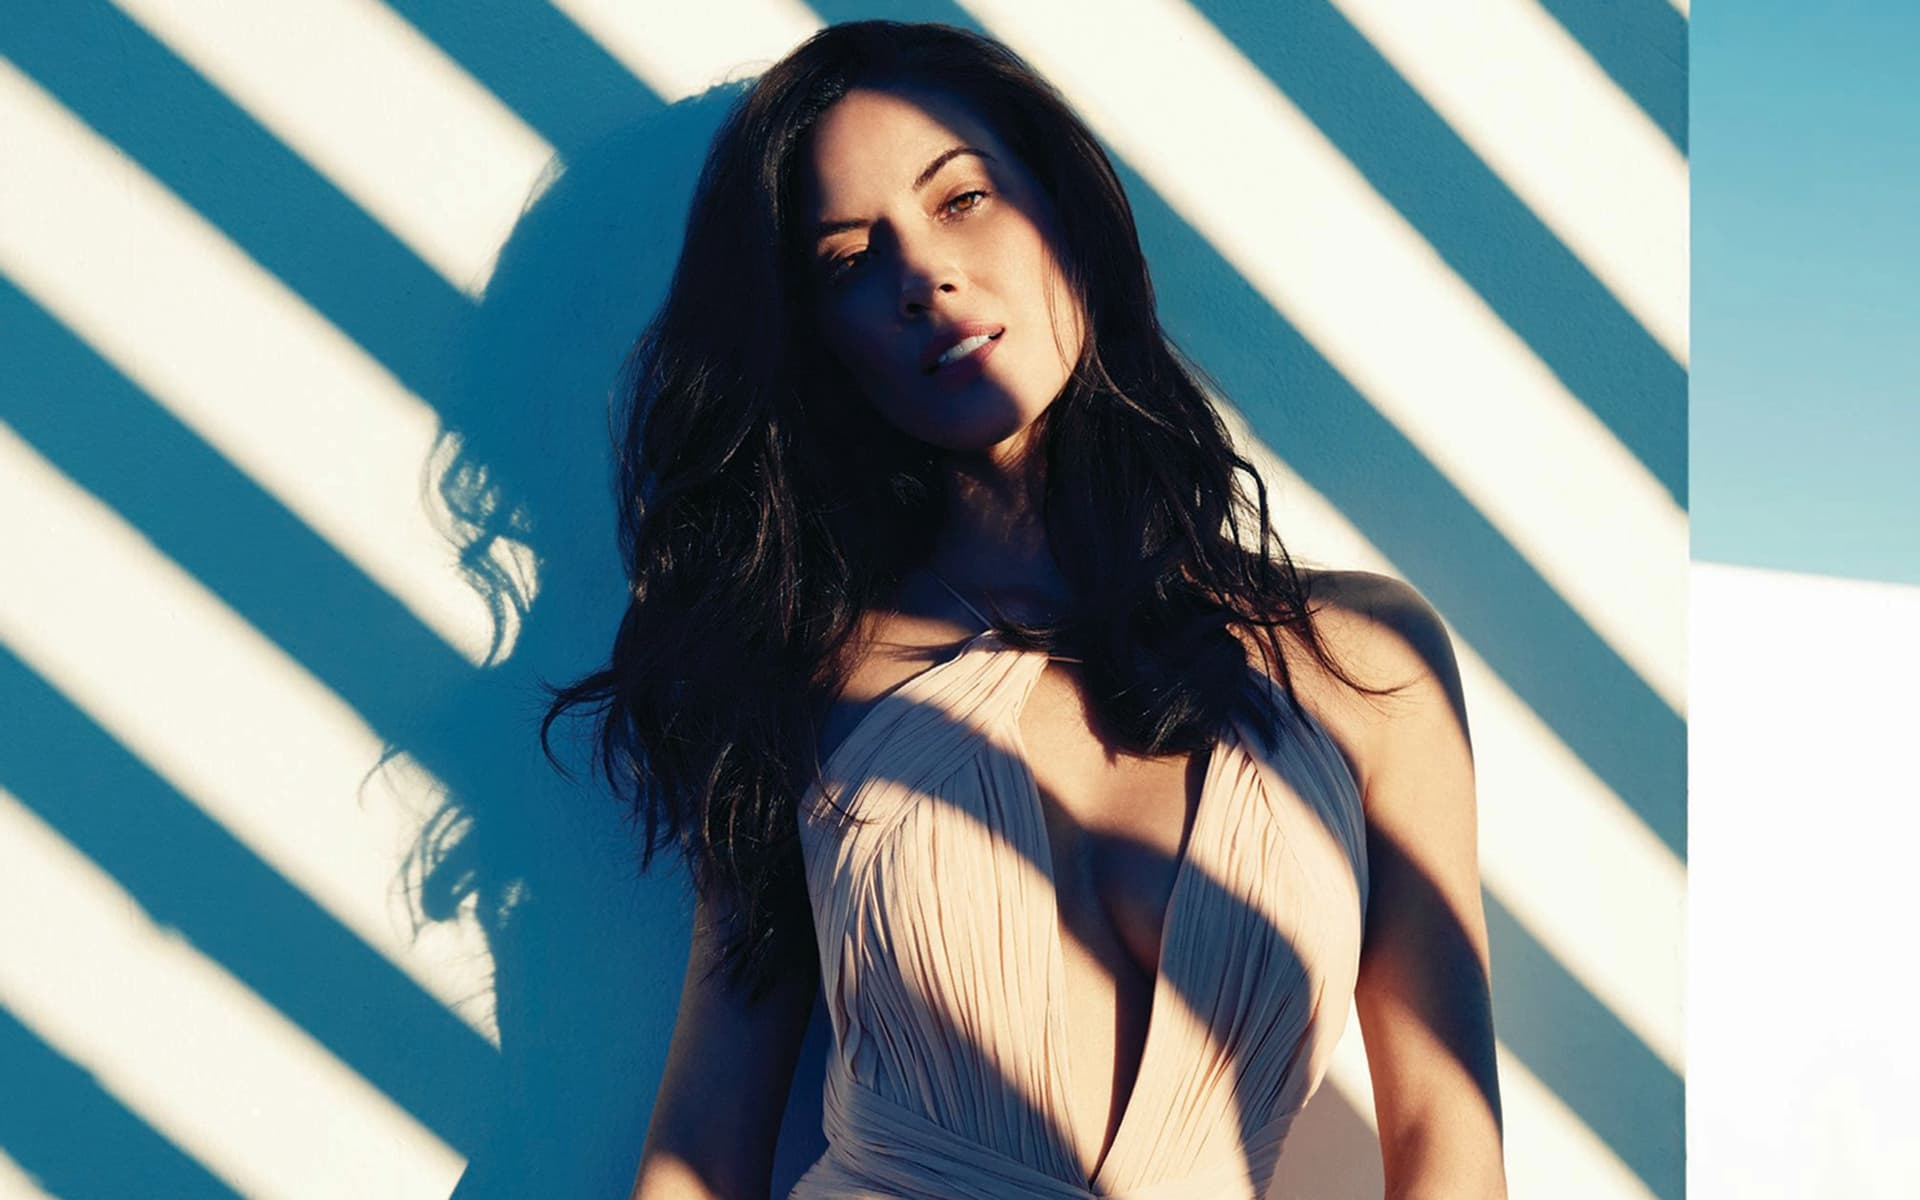 Olivia Munn Wallpapers for PC